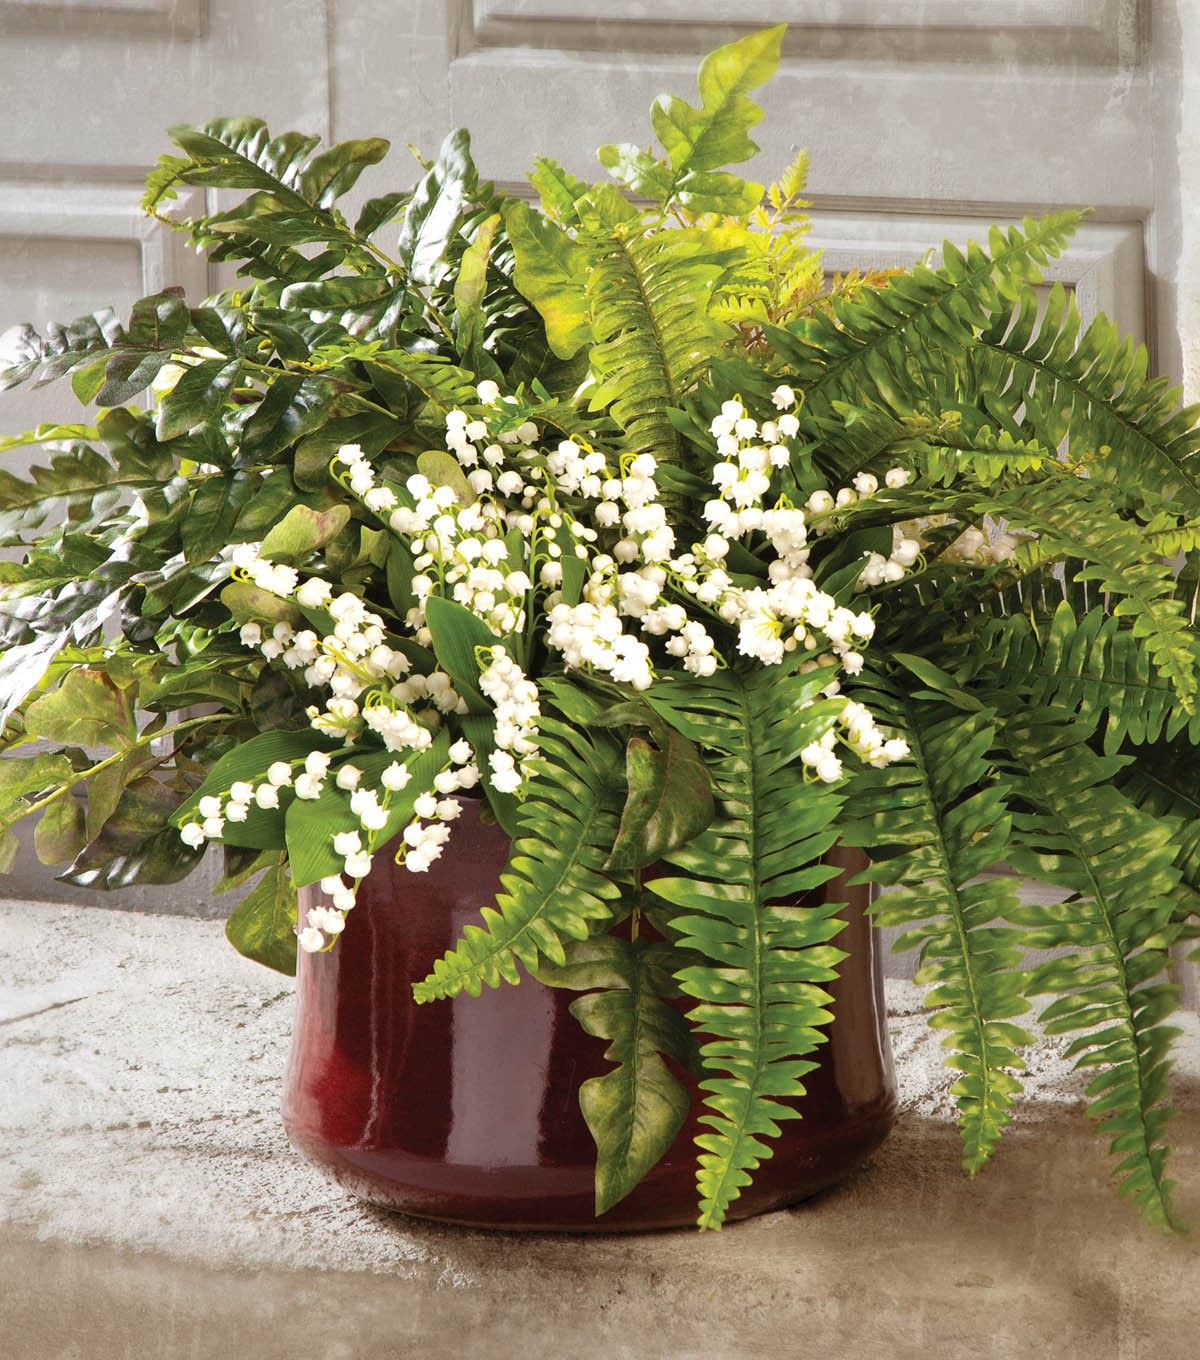 Potted ferns with lily of the valley joann potted ferns with lily of the valley izmirmasajfo